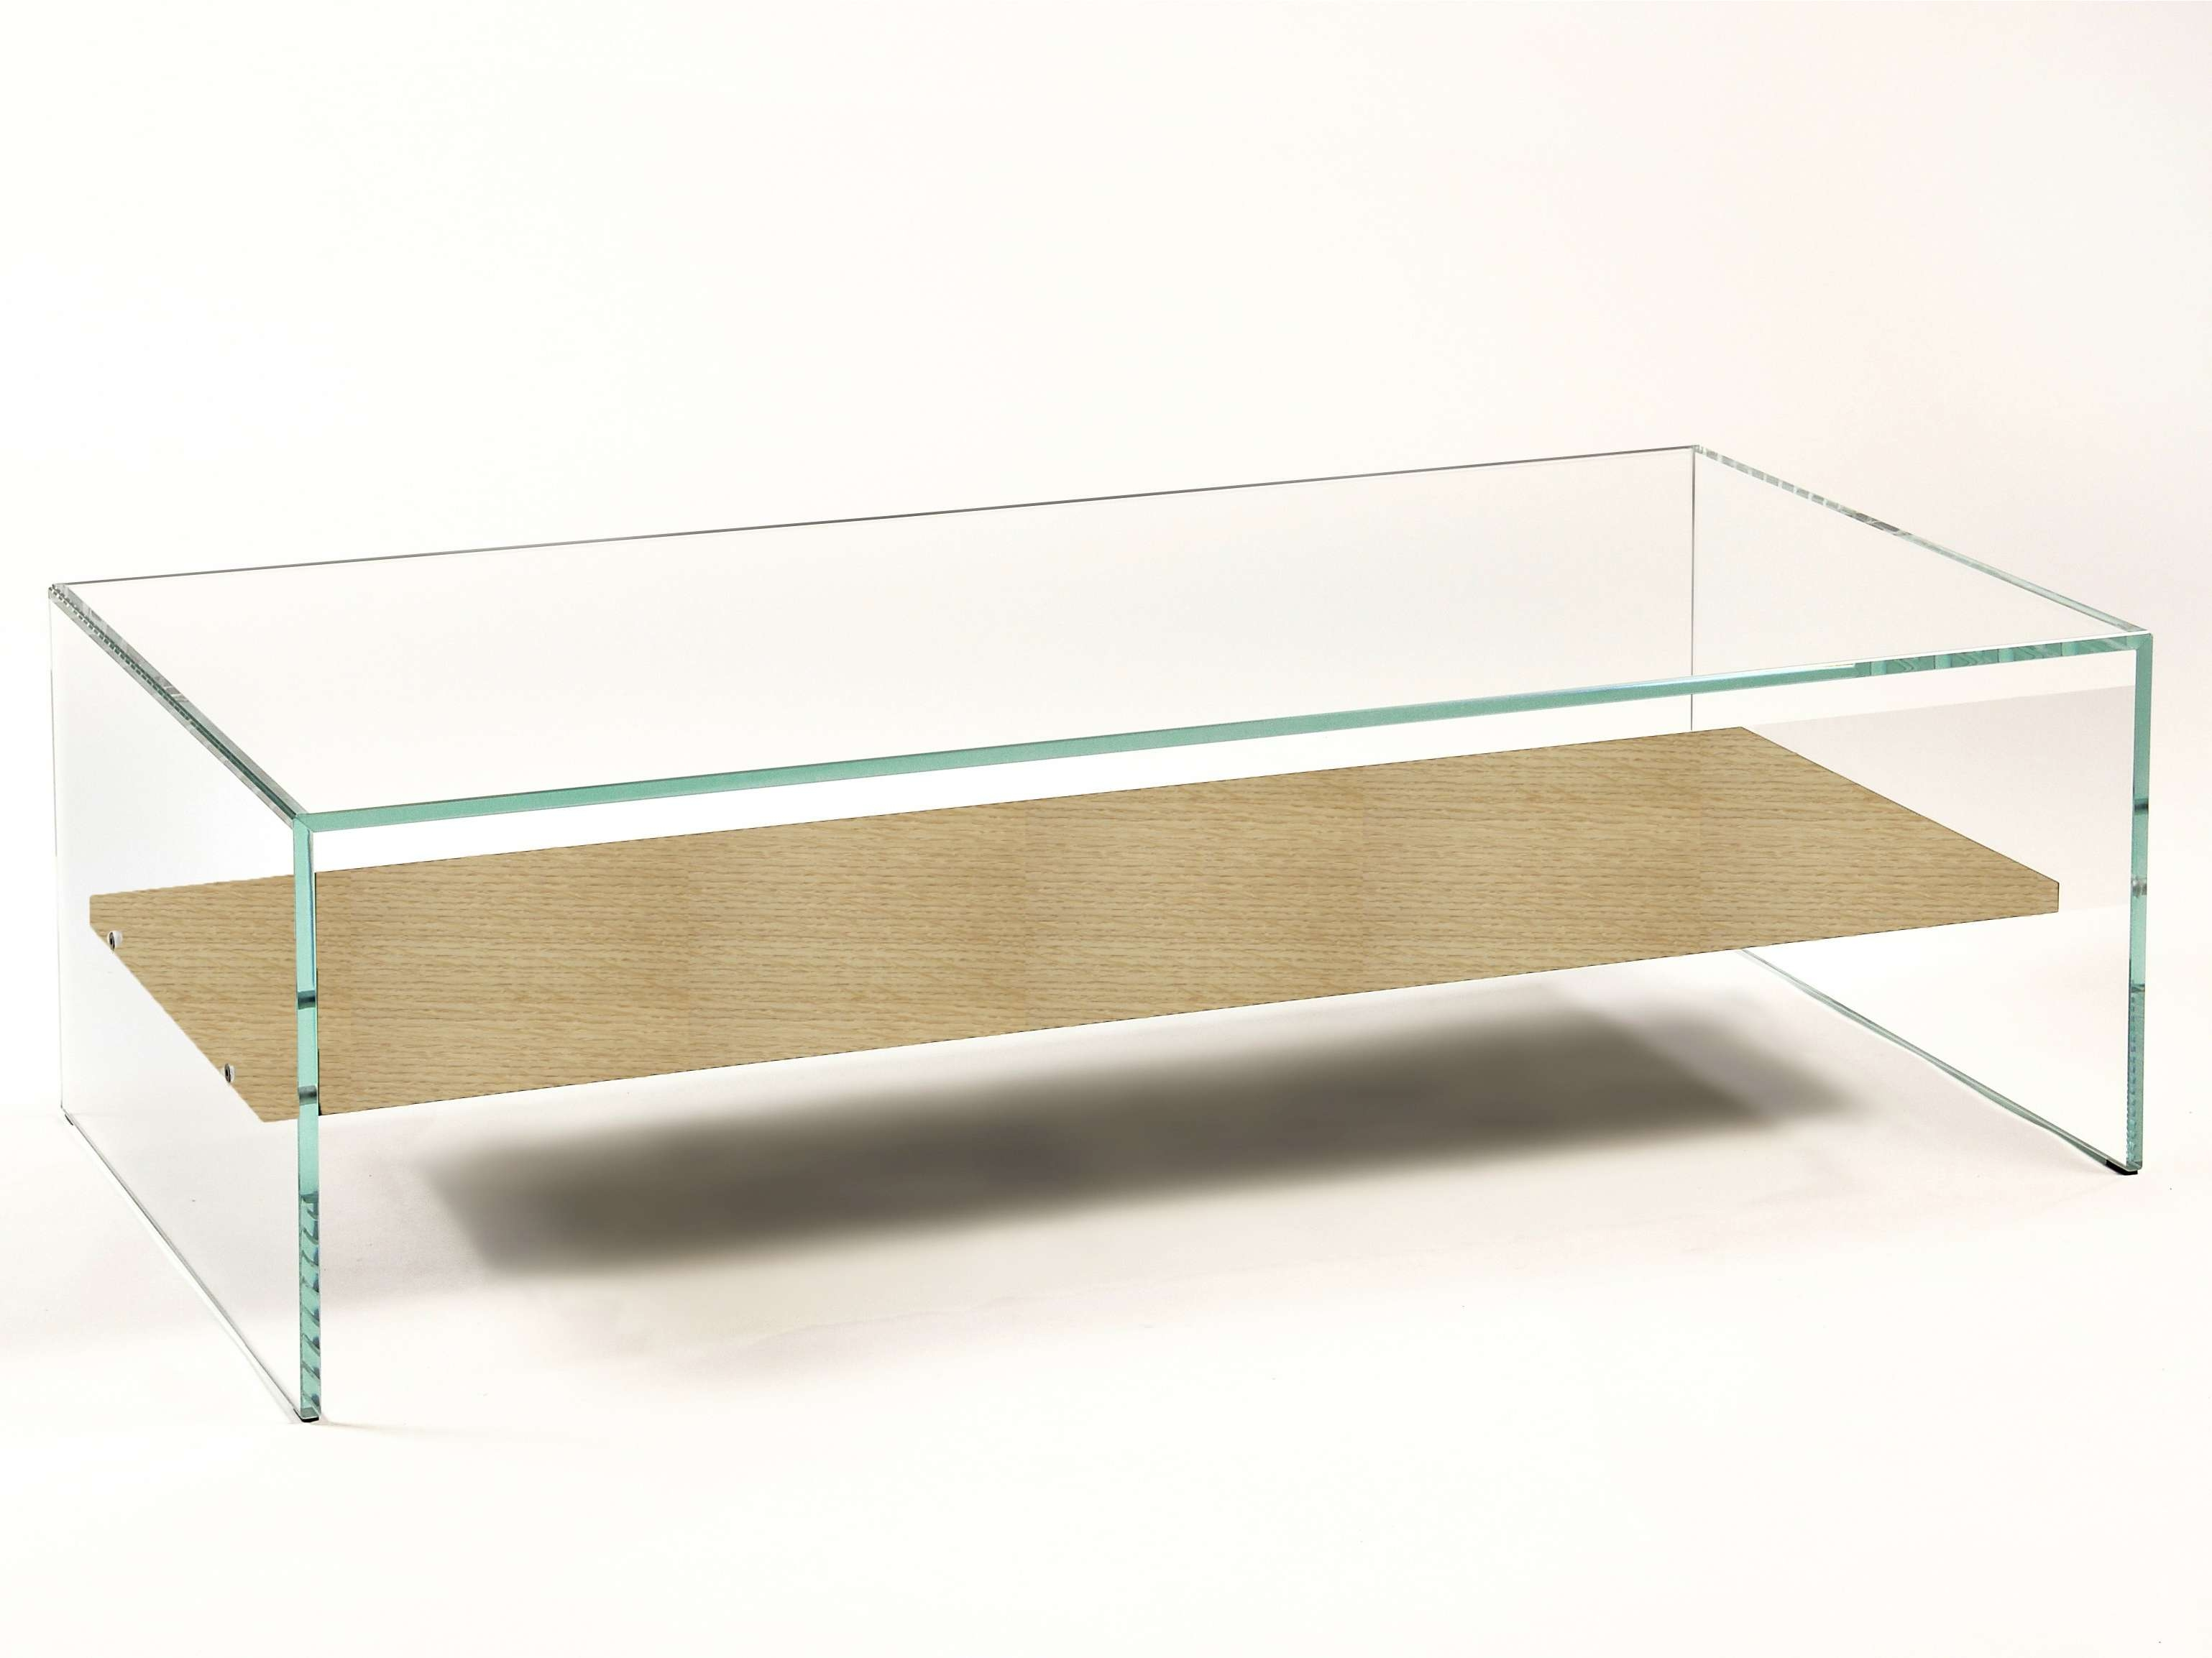 Custom Low Modern Glass Square Coffee Table With Wood Shelves For Within Trendy Glass Coffee Tables With Shelf (View 3 of 20)